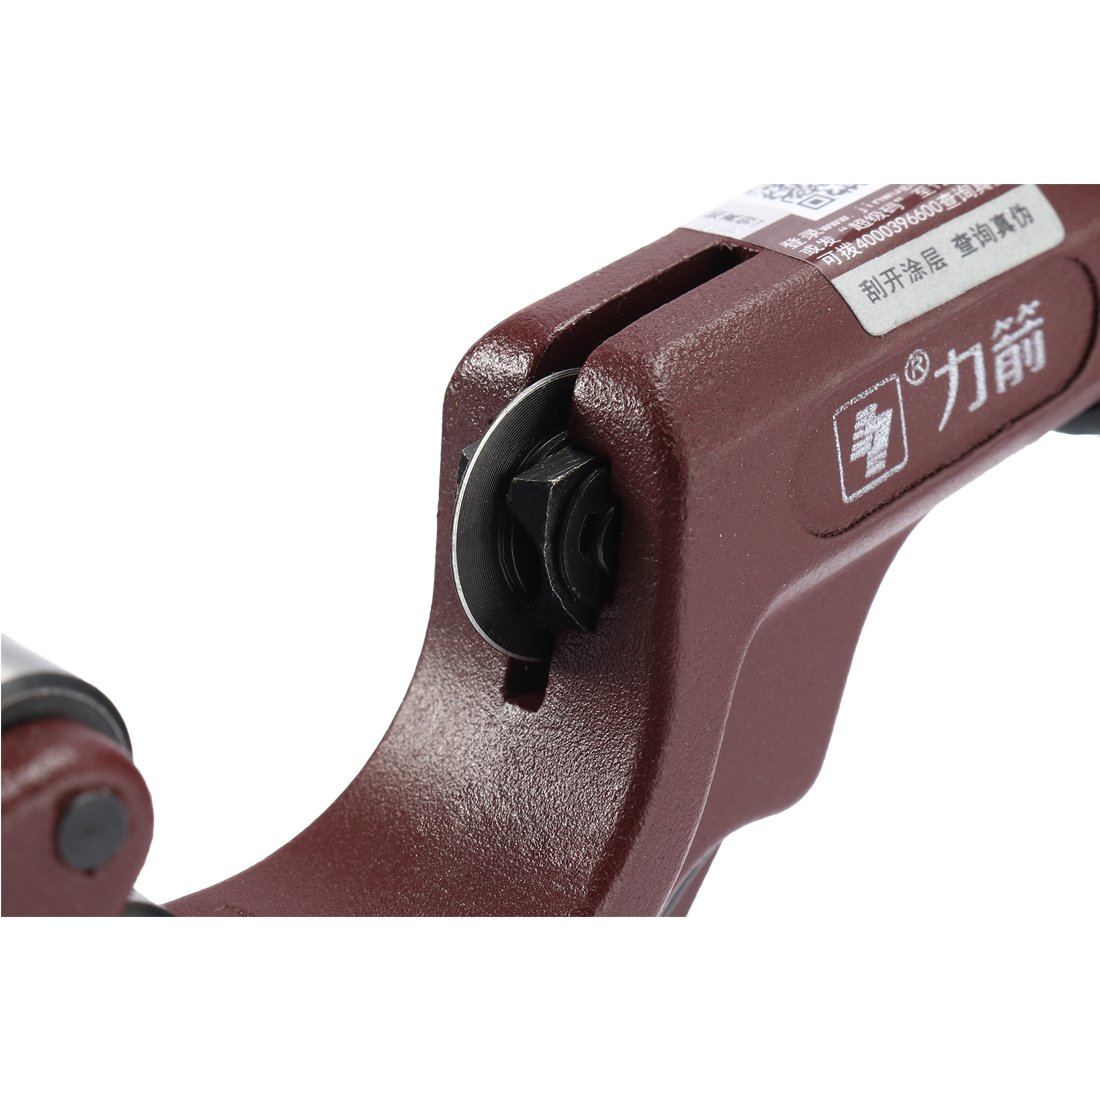 uxcell Tube Cutter, 1/8-inch to 1-1/4-inch Capacity, Copper Aluminum Plumbing Cutting by uxcell (Image #5)